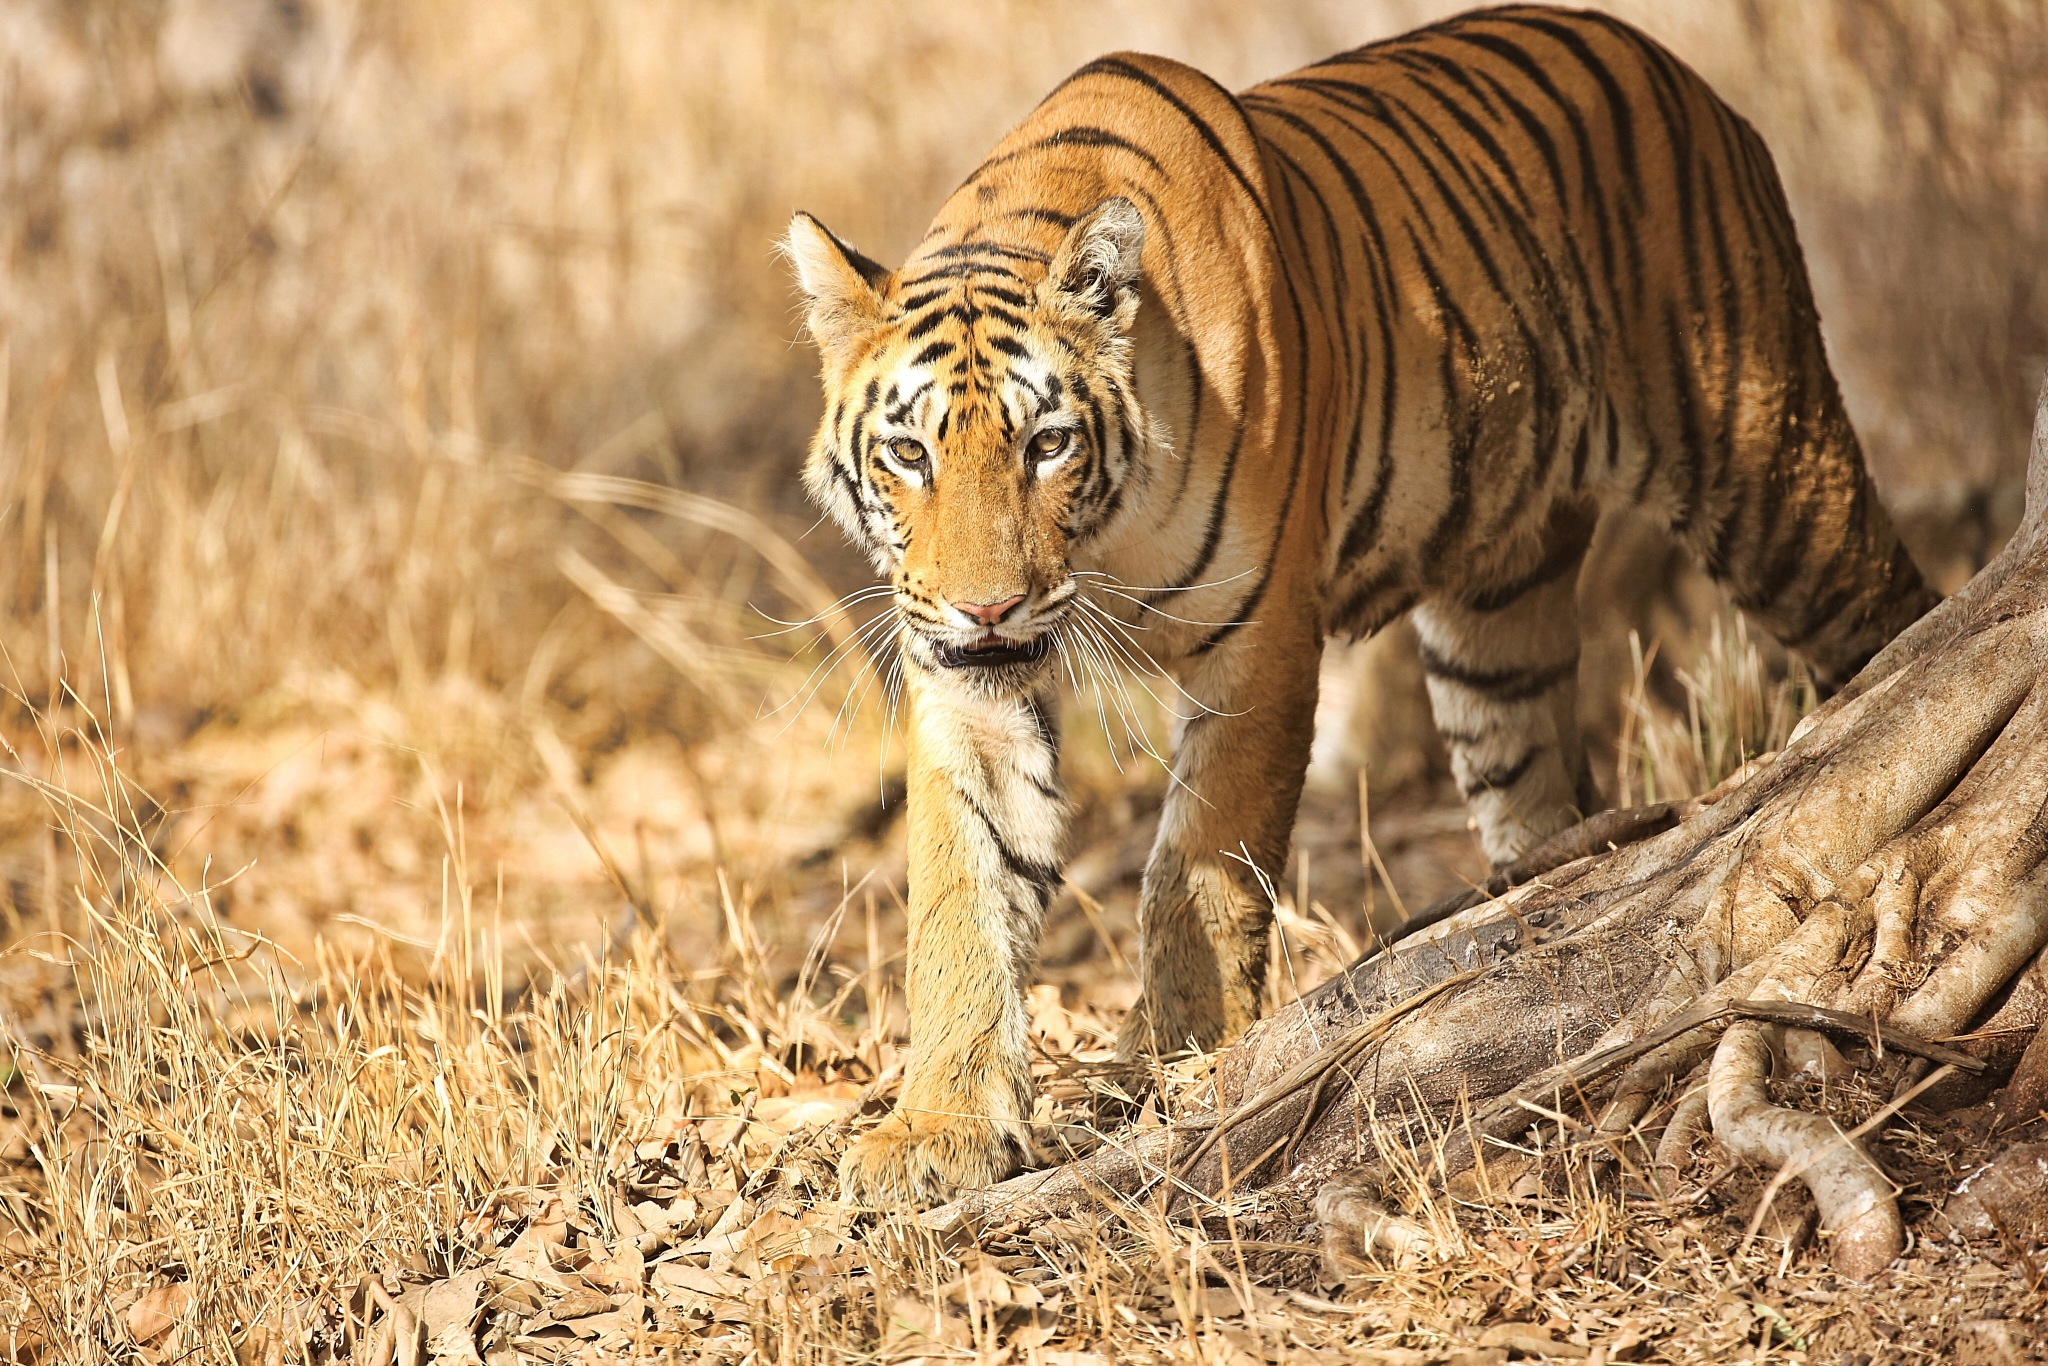 Tiger by Aarushi goyal